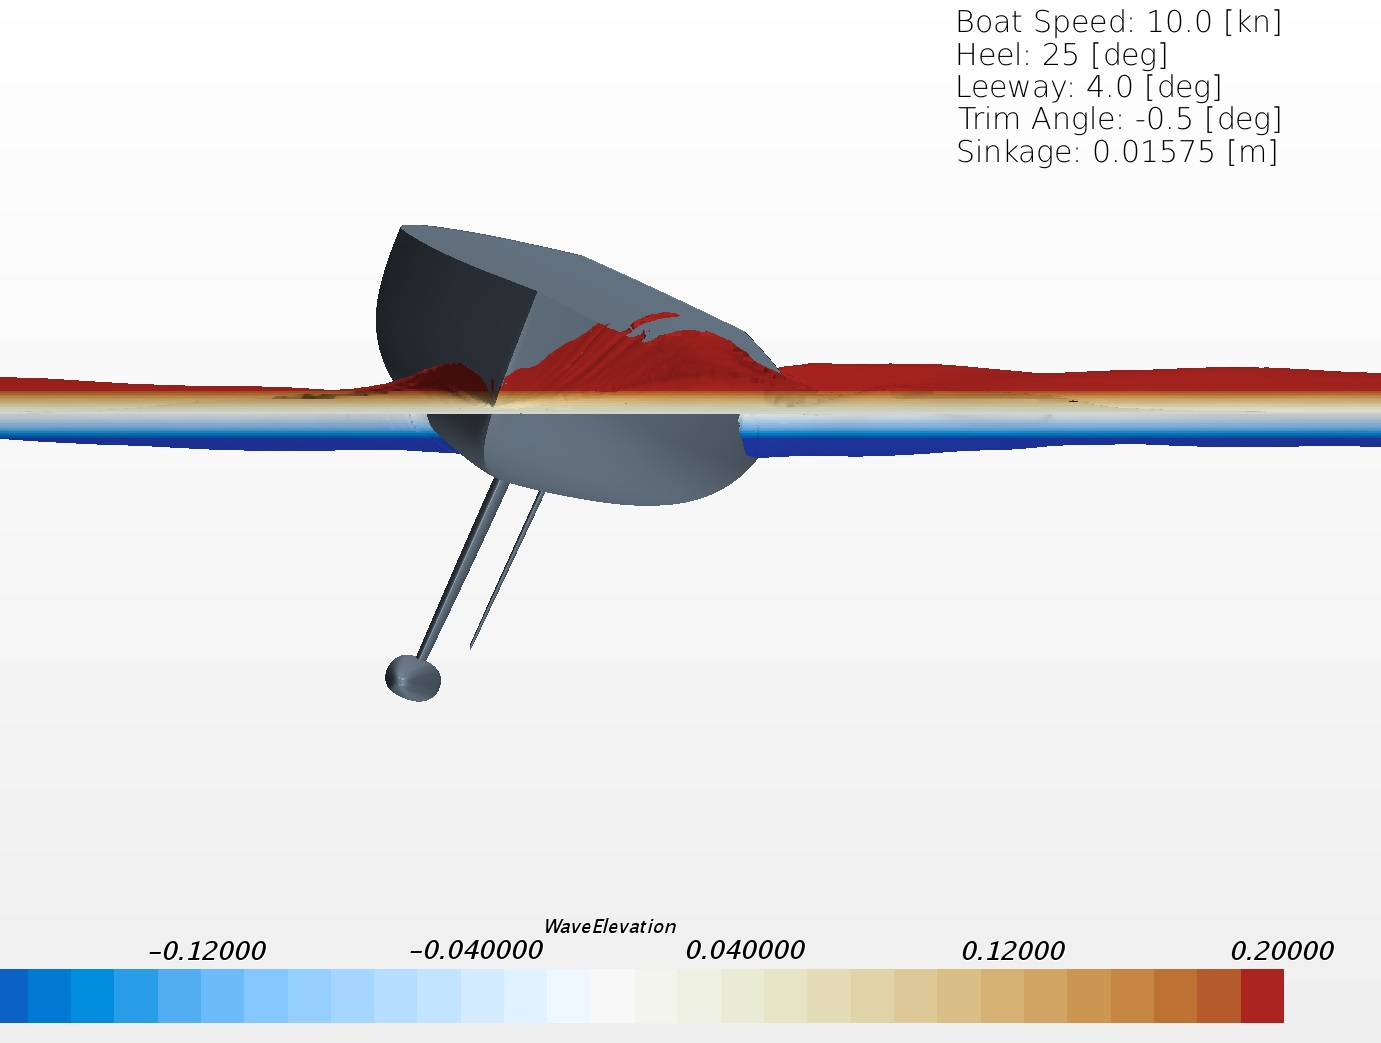 The image is taken from a computational fluid dynamics CFD study undertaken by Owen Clarke Design as part of the refit of a modern classic racing yacht. The goal was to improve the performance of the sailboat by replacing the original production rudder and keel to improve outright speed and improve the corrected time / rating results in a specific wind band. This was achieved by improving the yacht's balance and altering the displacement and righting moment using CFD to validate the naval architects work.